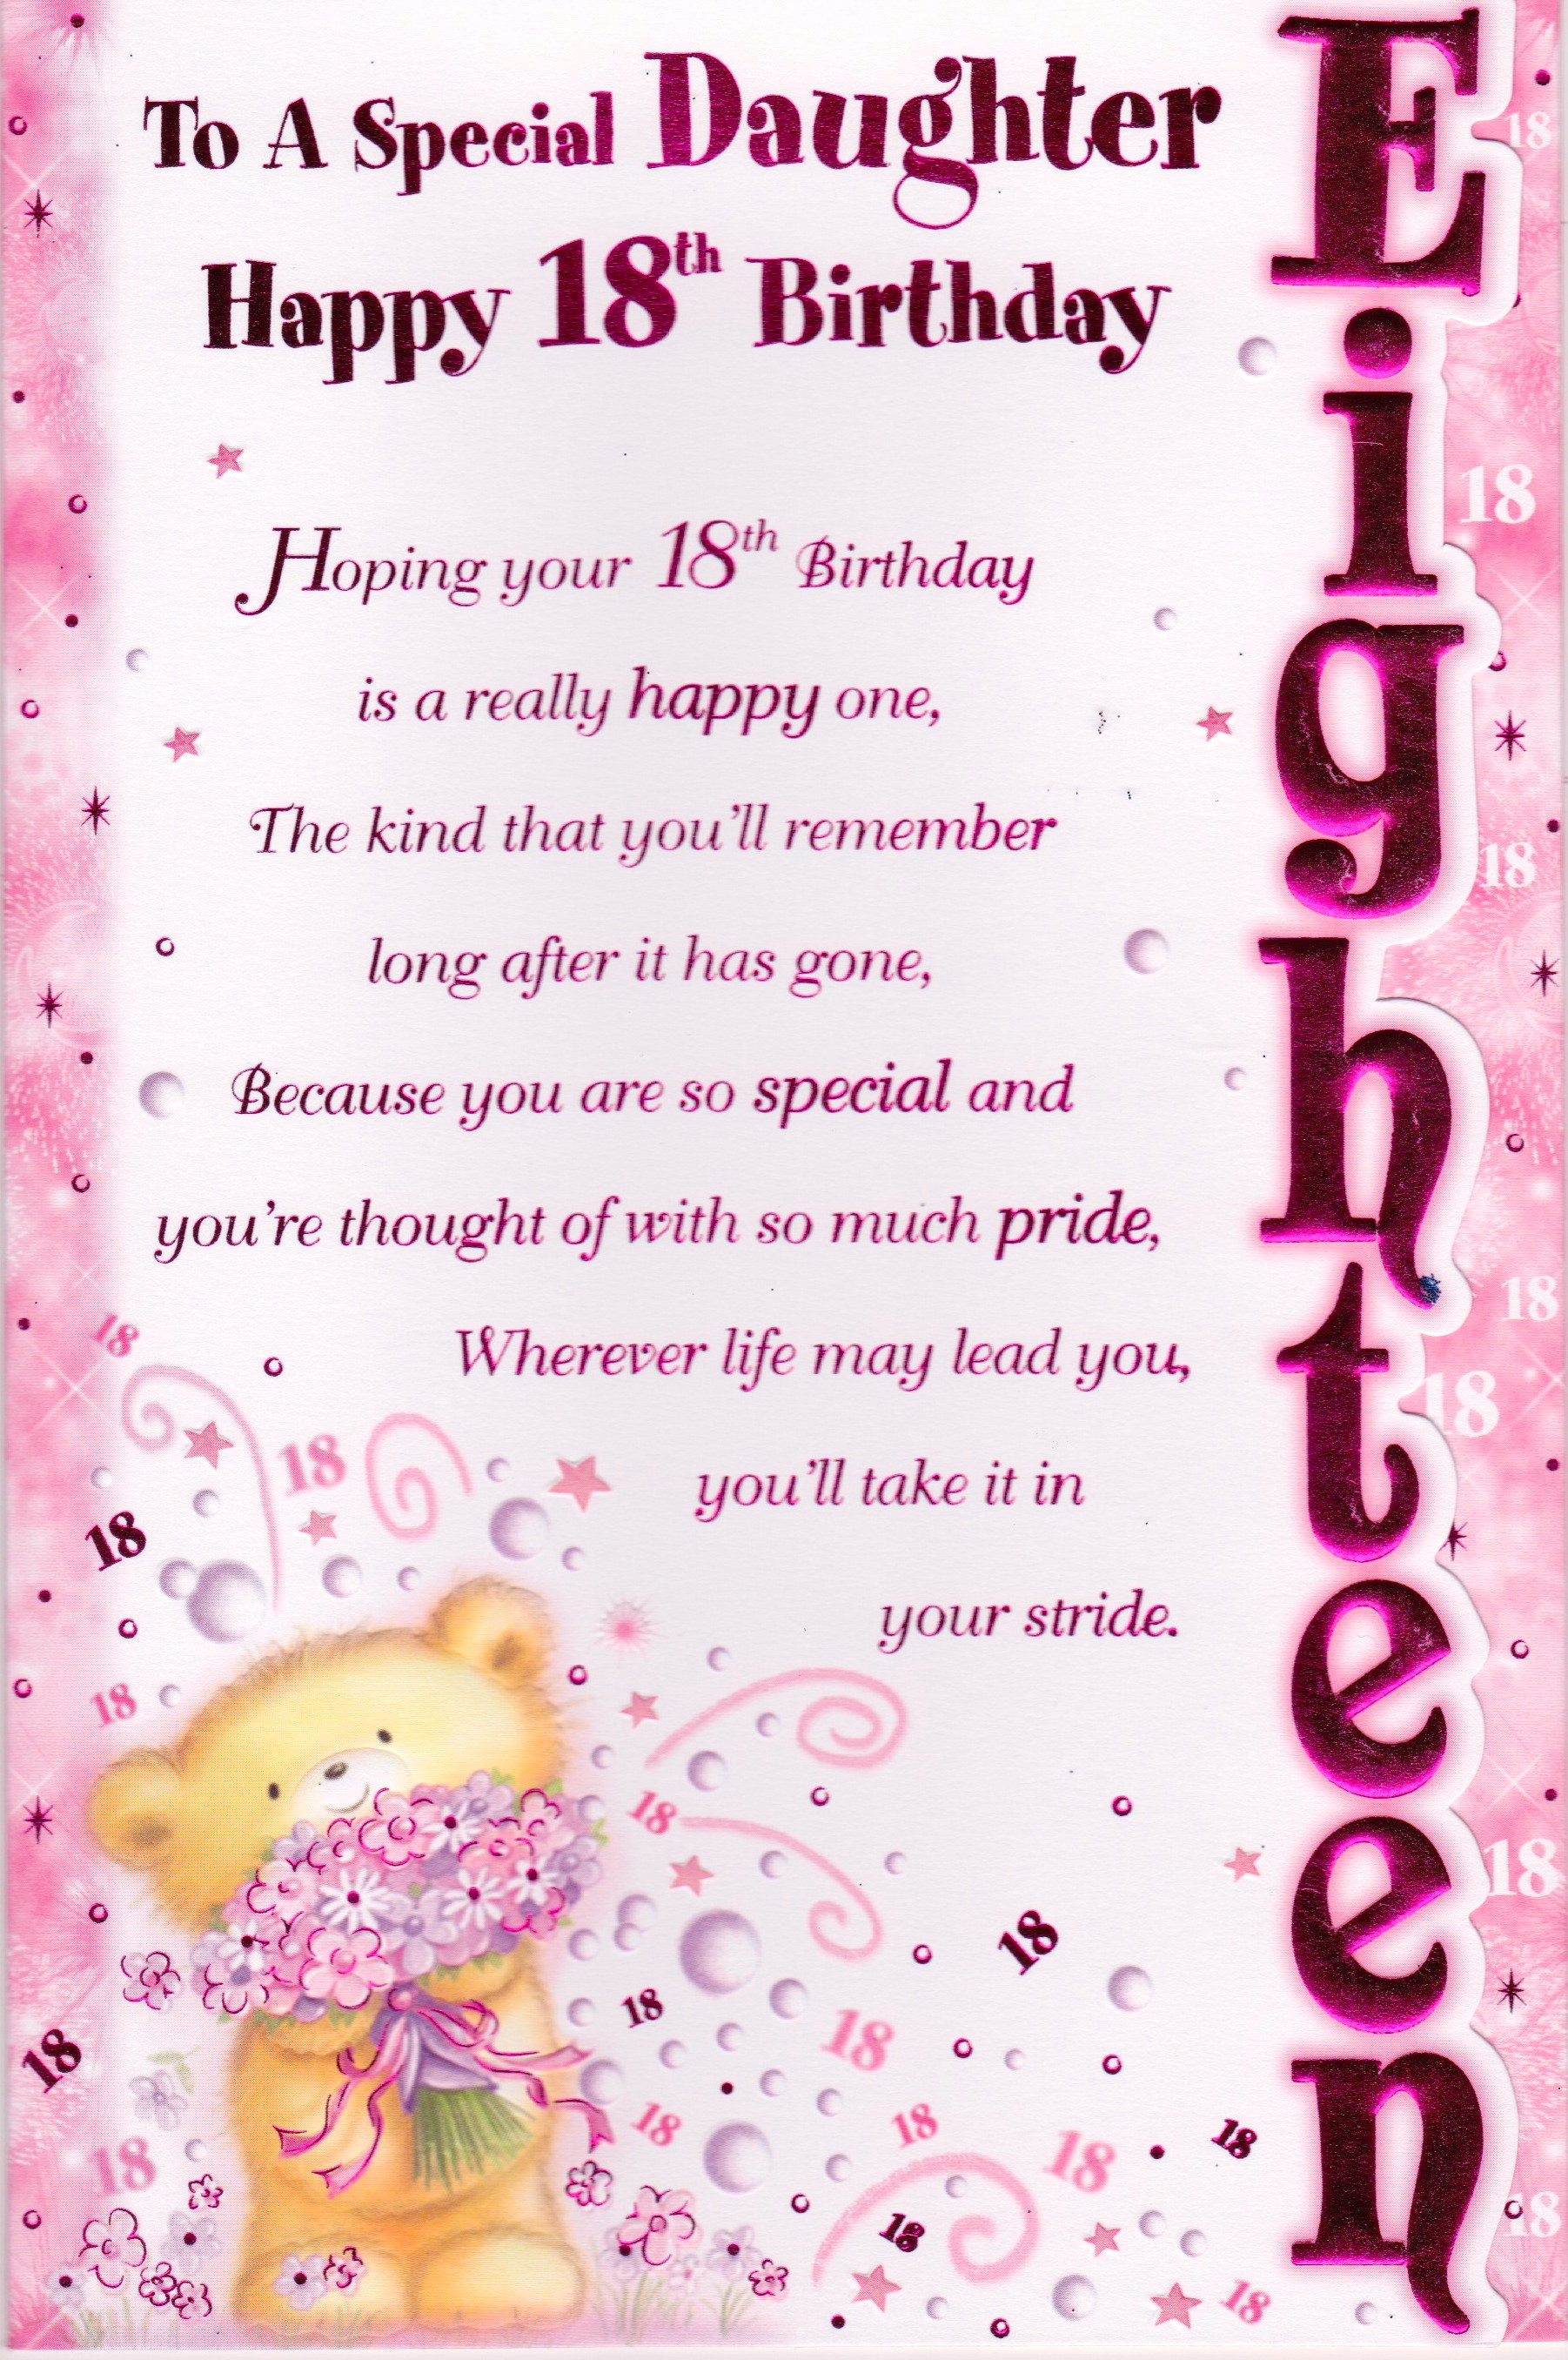 birthday poem for 18 year old daughter ; 18-year-old-birthday-card-messages-unique-happy-birthday-daughter-poems-collection-of-18-year-old-birthday-card-messages